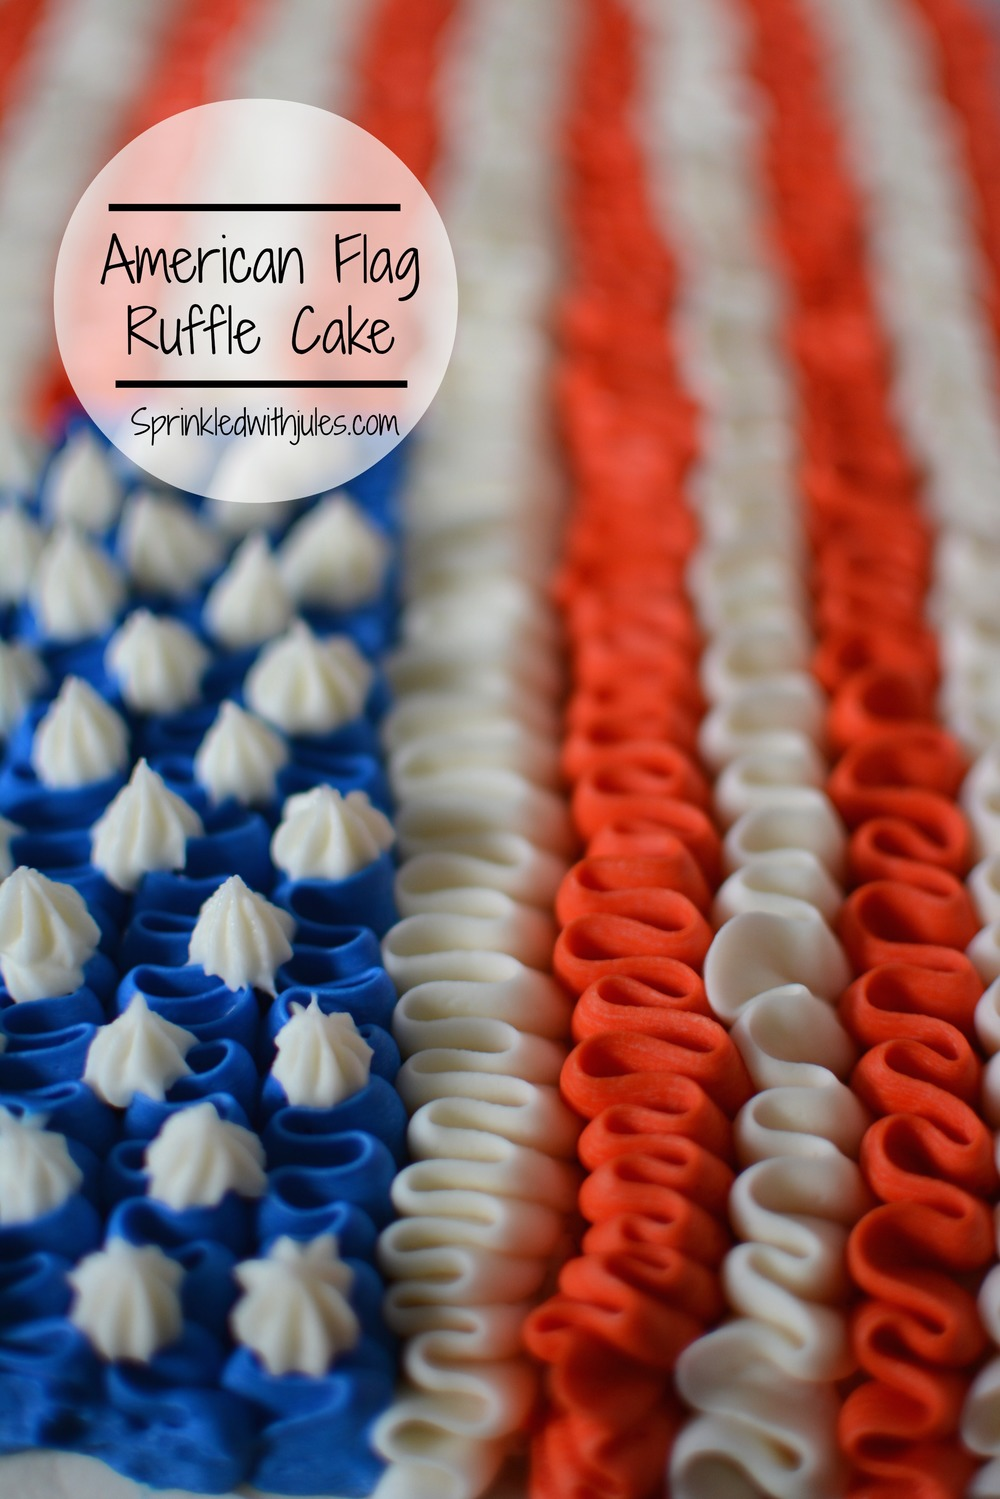 American Flag Ruffle Cake / Sprinkled With Jules